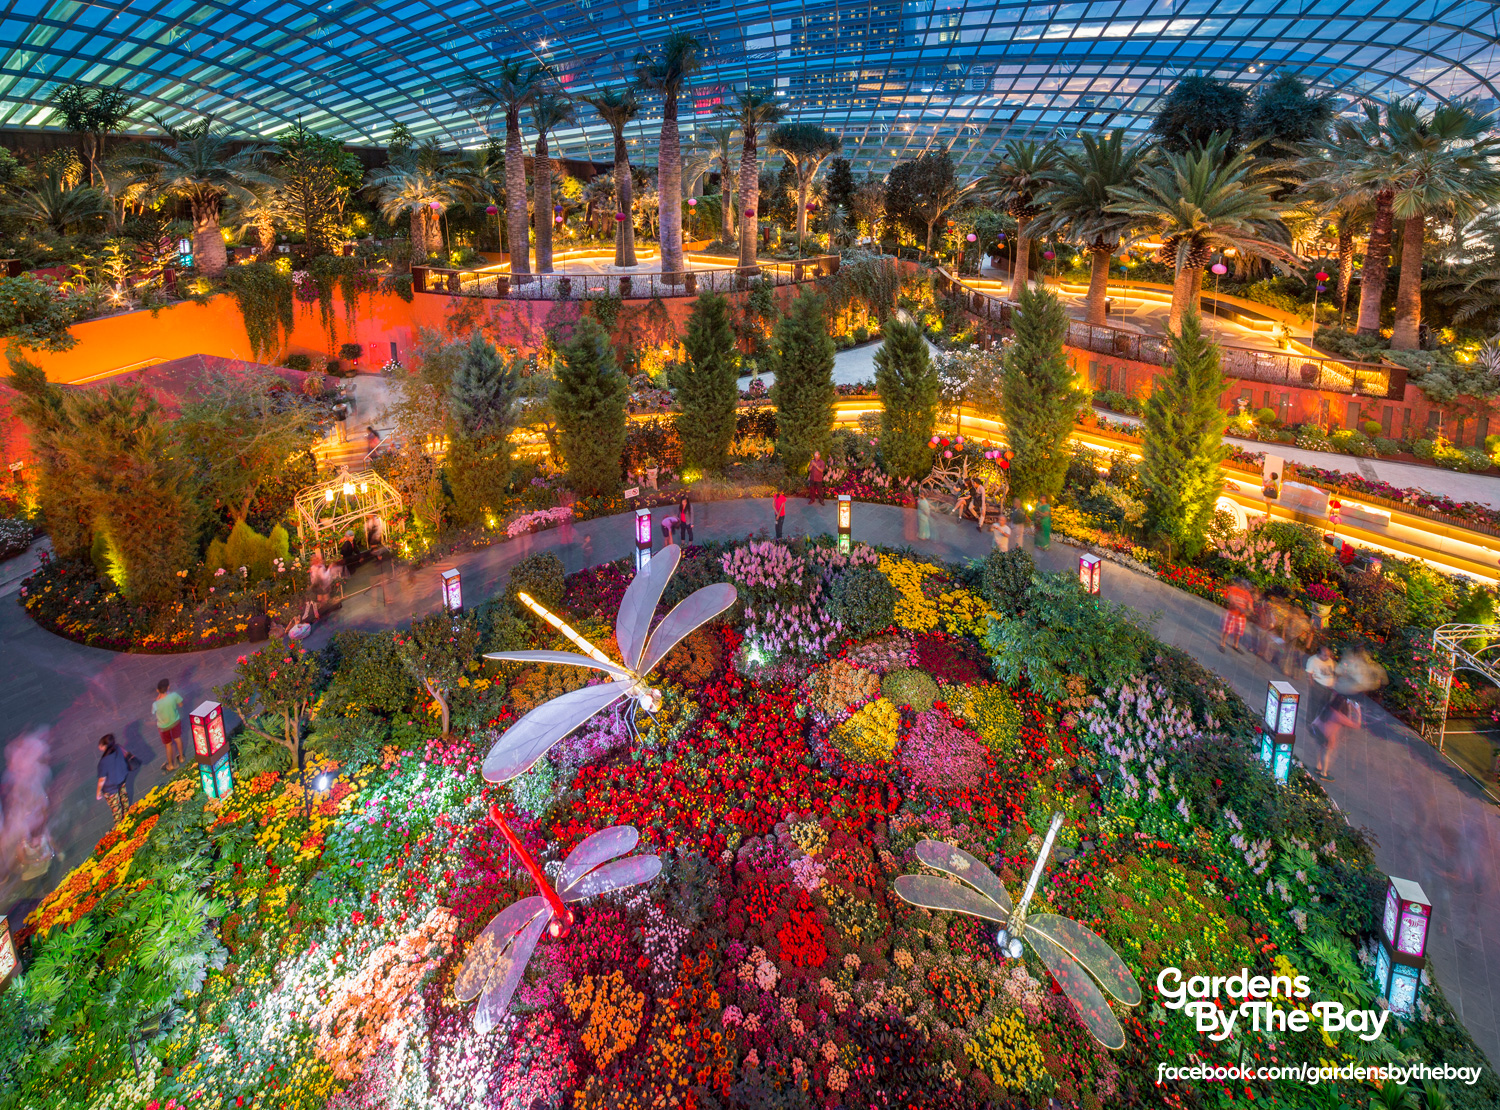 [Events] Gardens By The Bay Celebrates Mid Autumn Festival